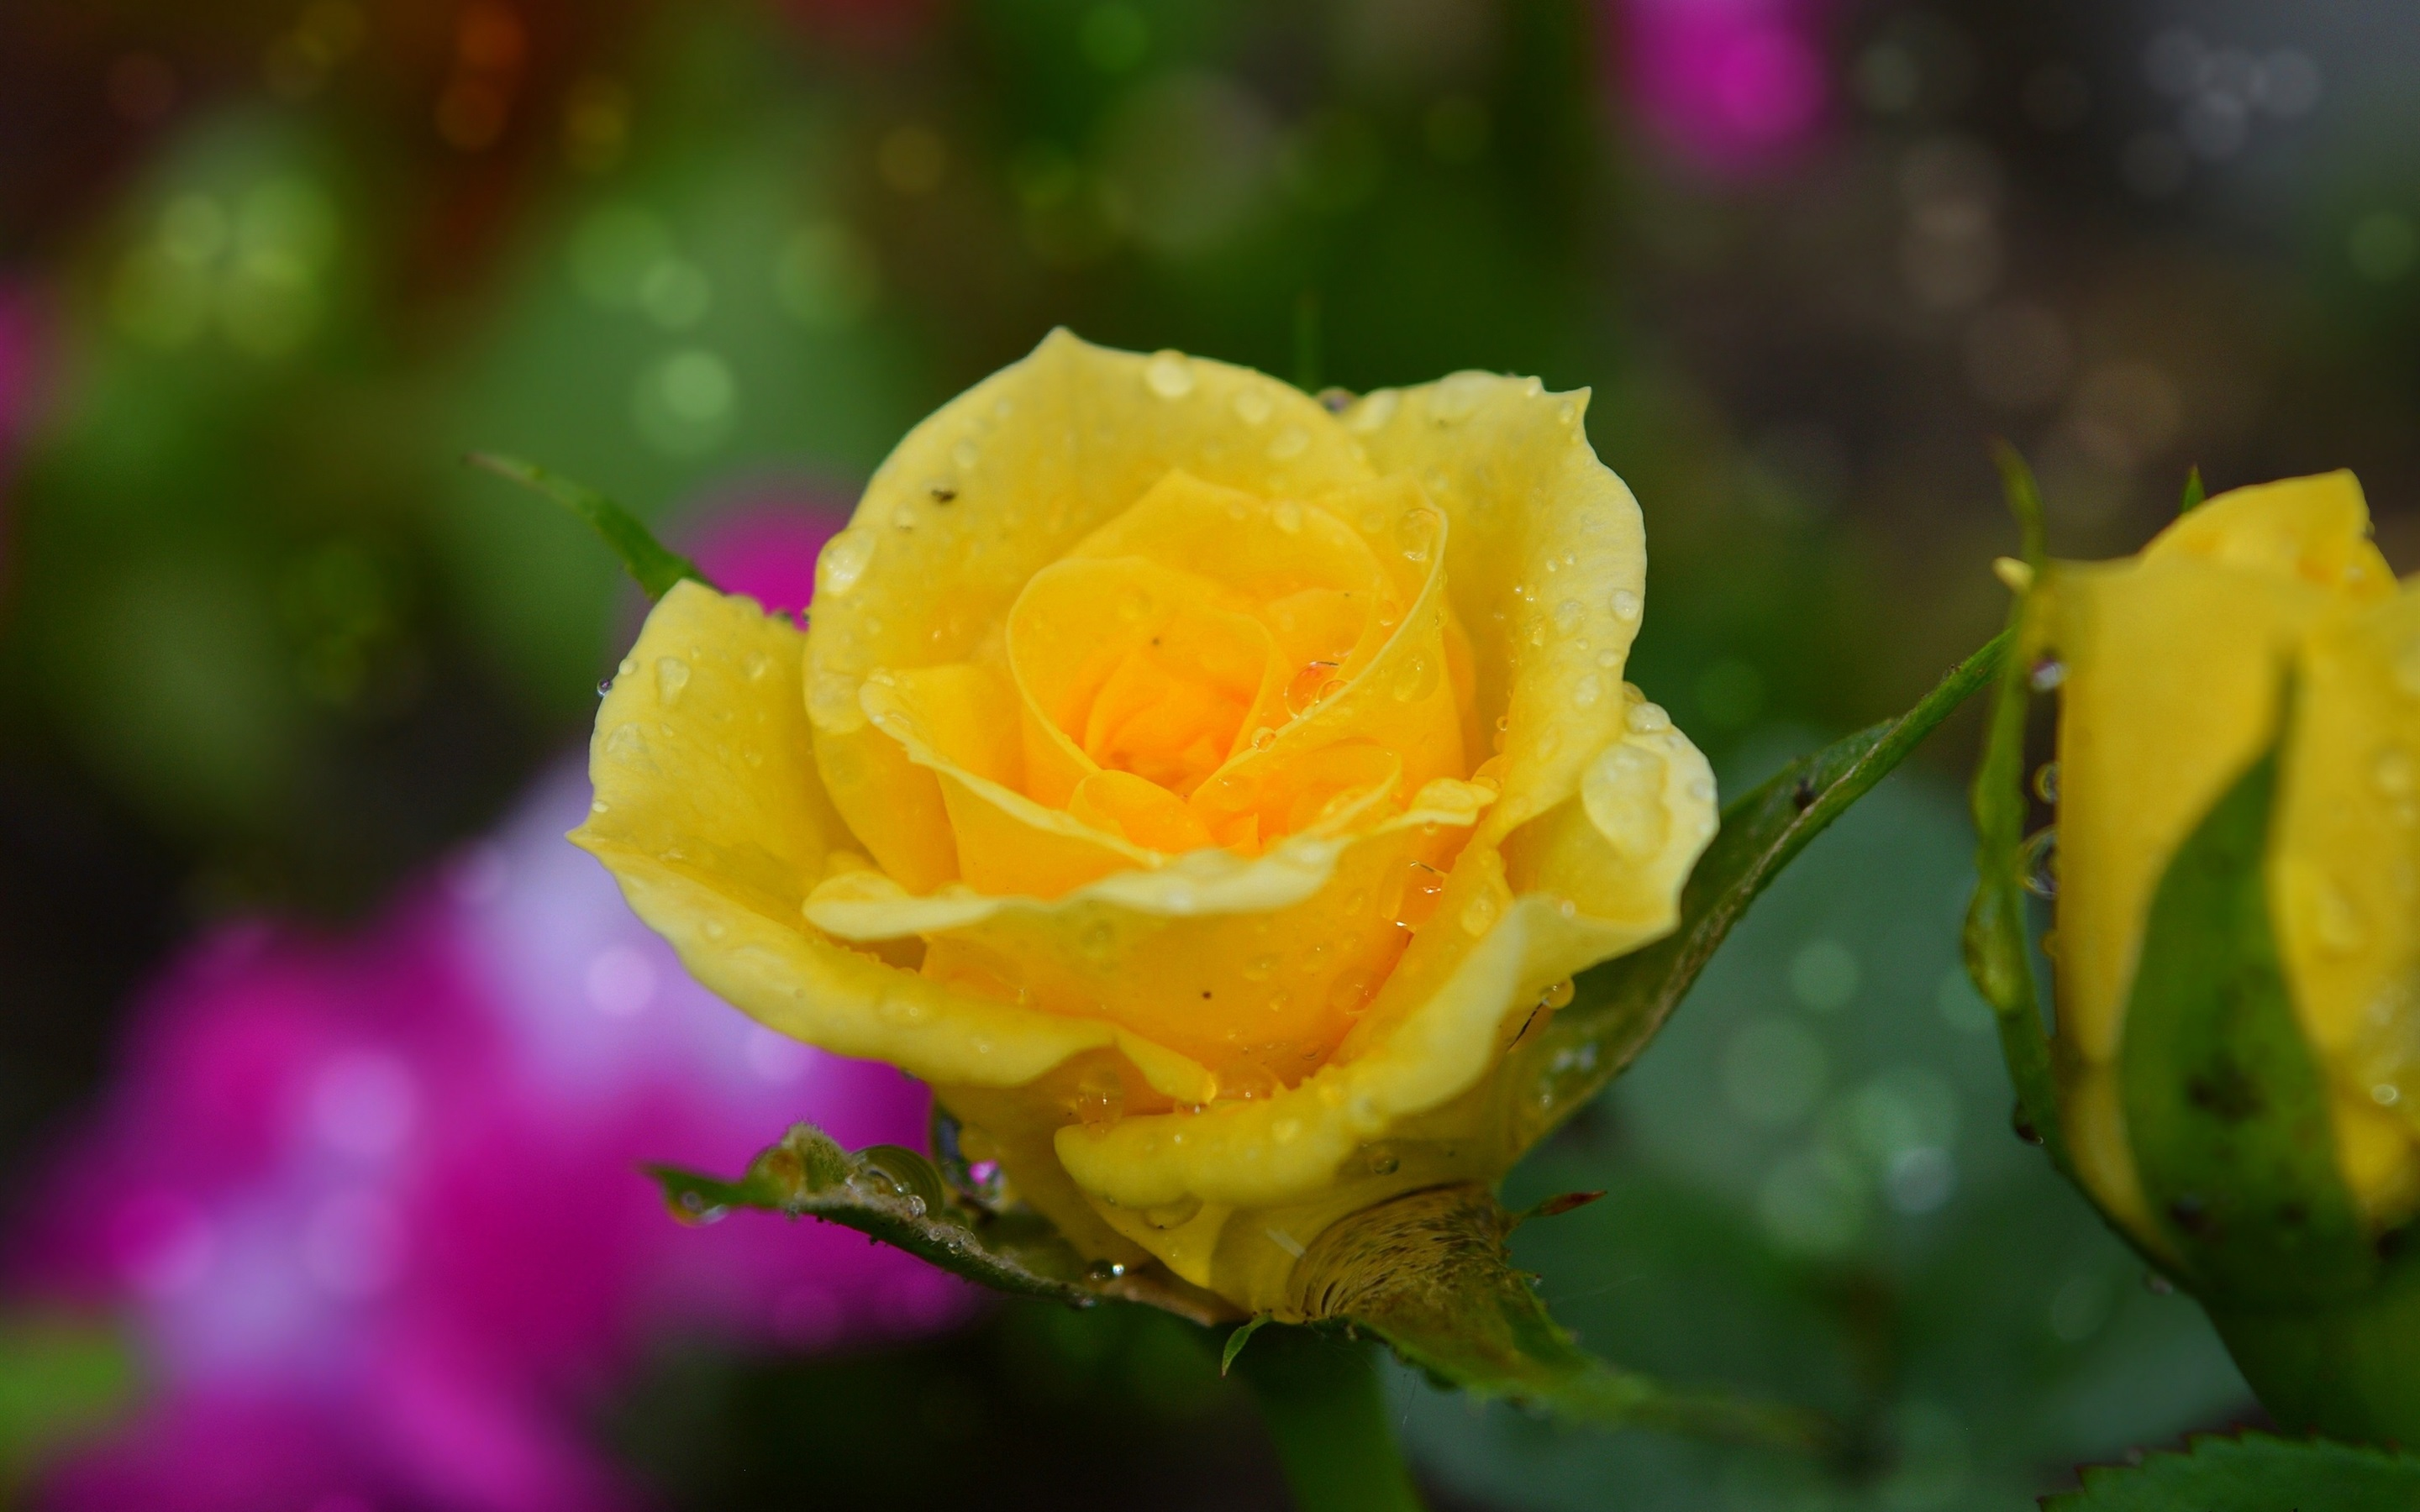 Wallpaper Yellow Rose Water Droplets 2880x1800 Hd Picture